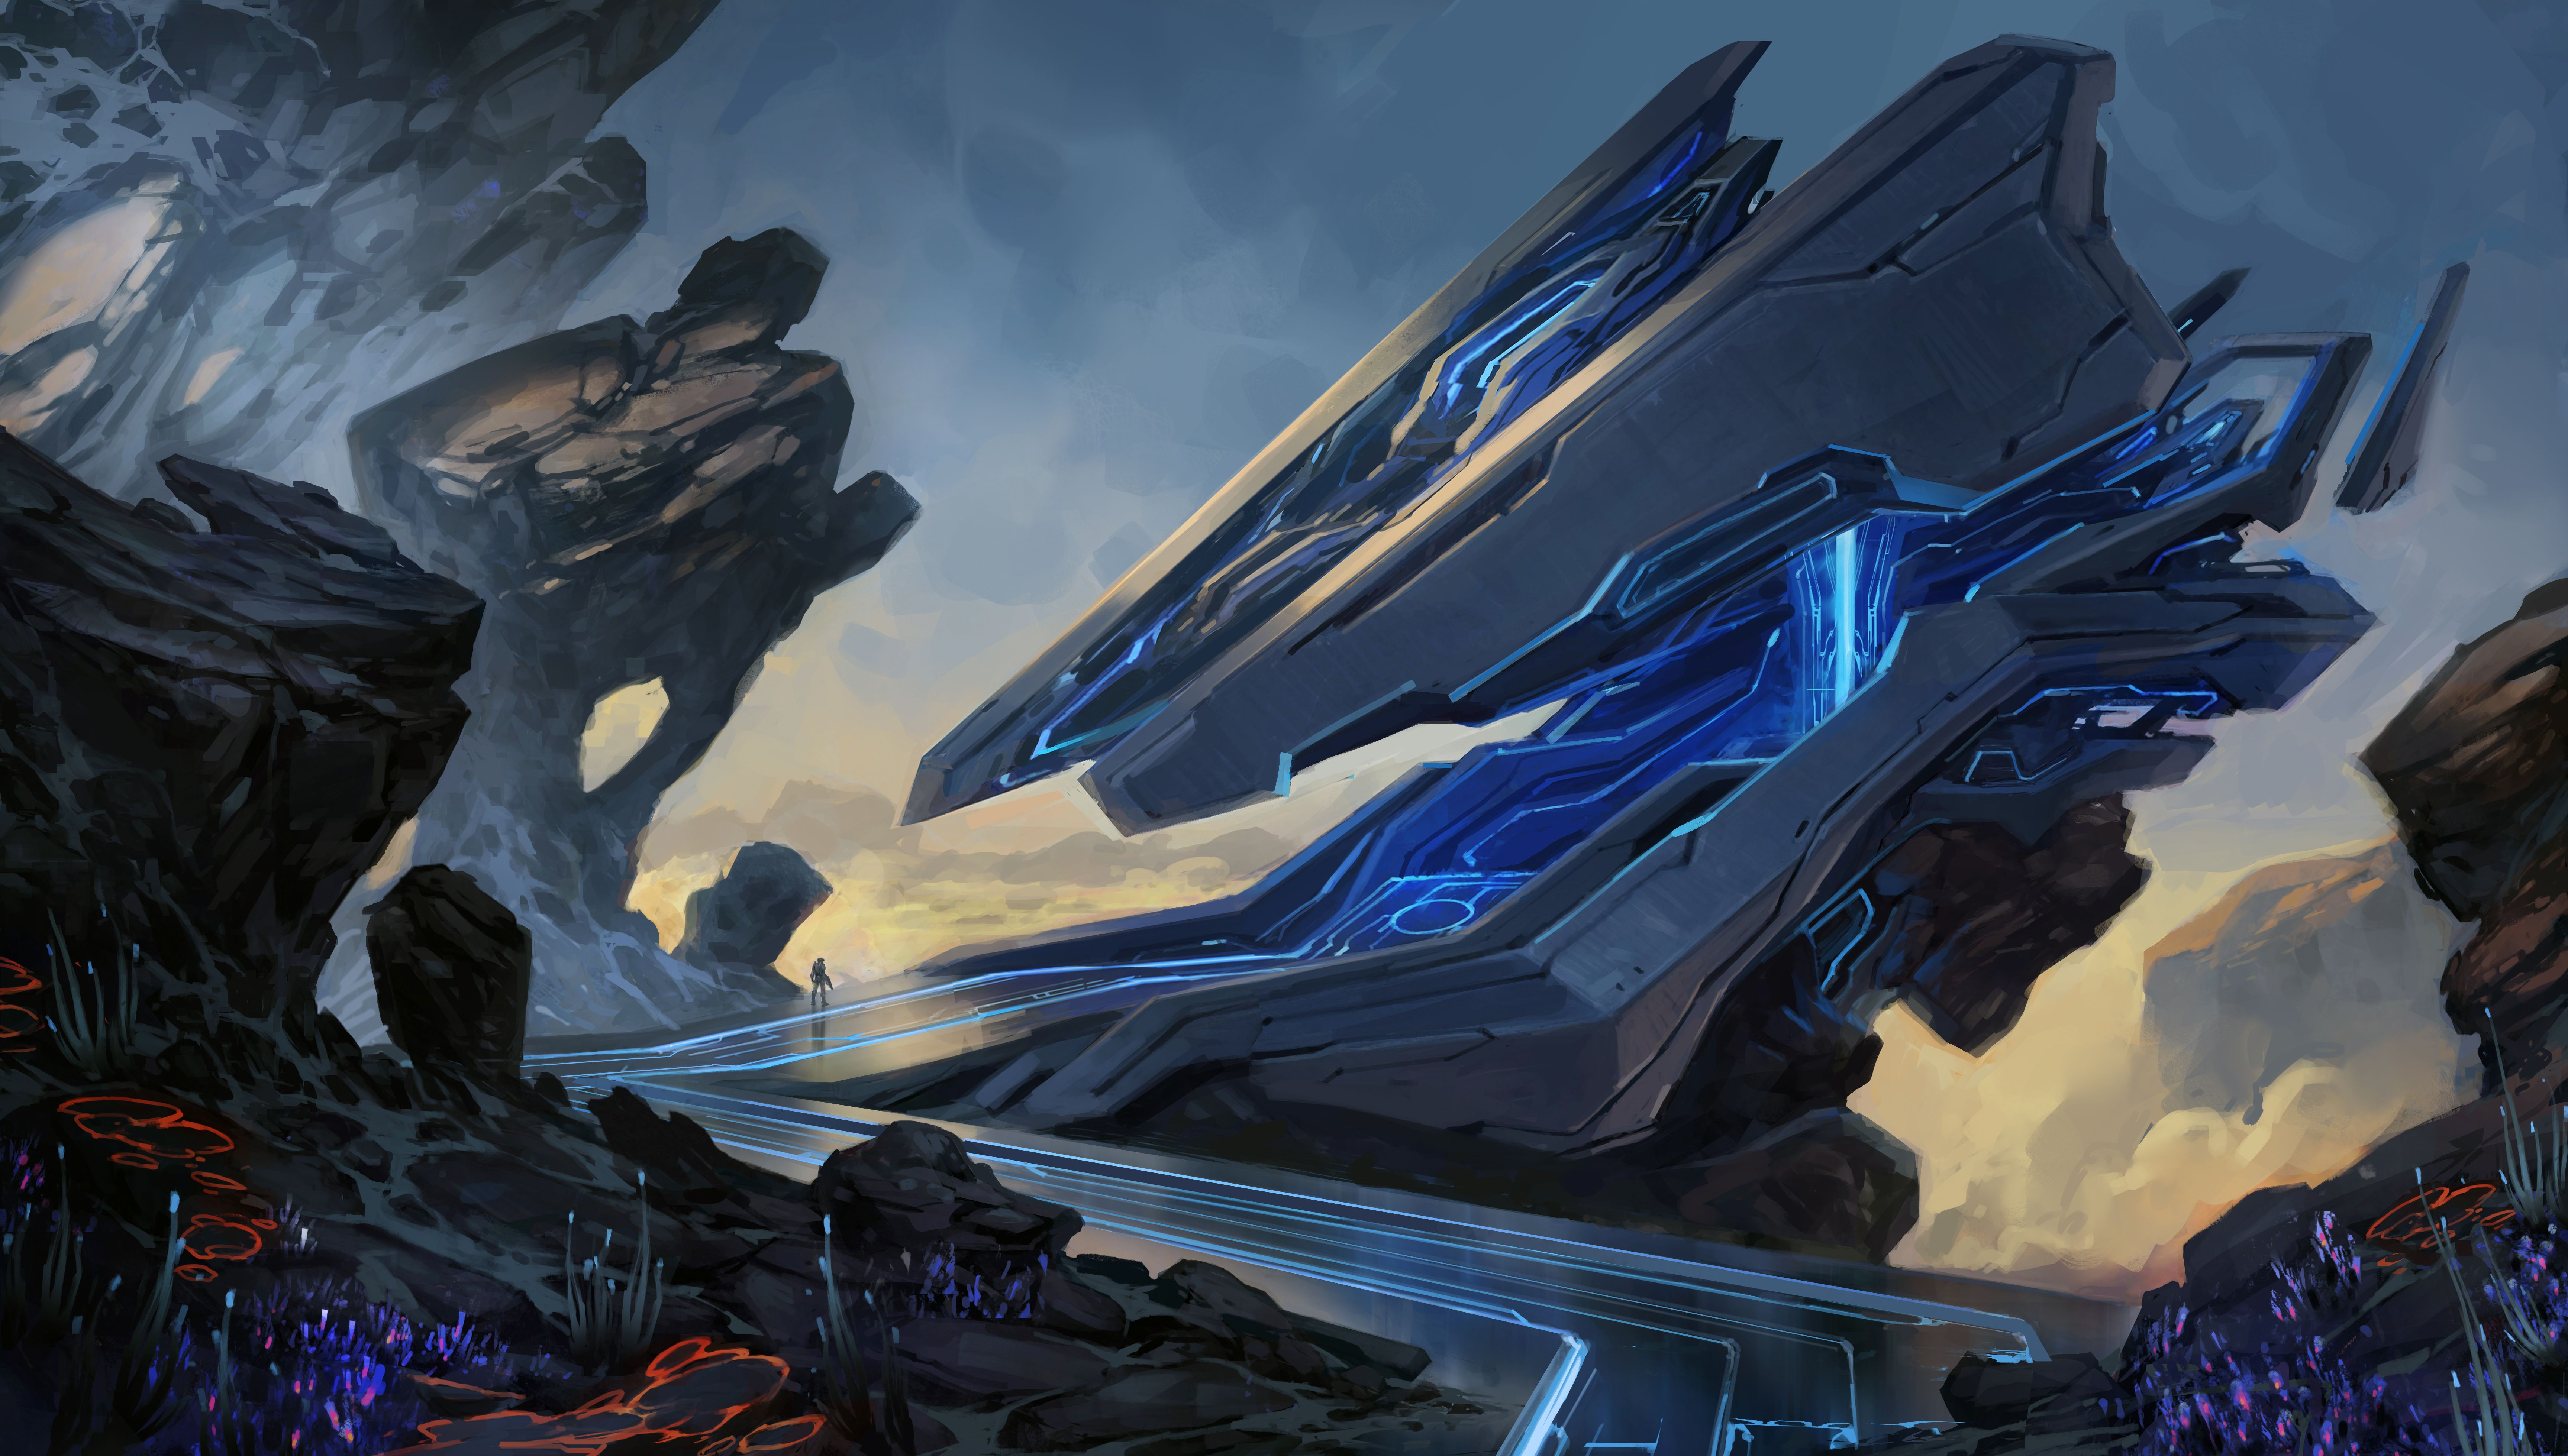 Here S A Ton Of Concept Art From Halo 5 Concept Art World Environment Concept Art Game Concept Art